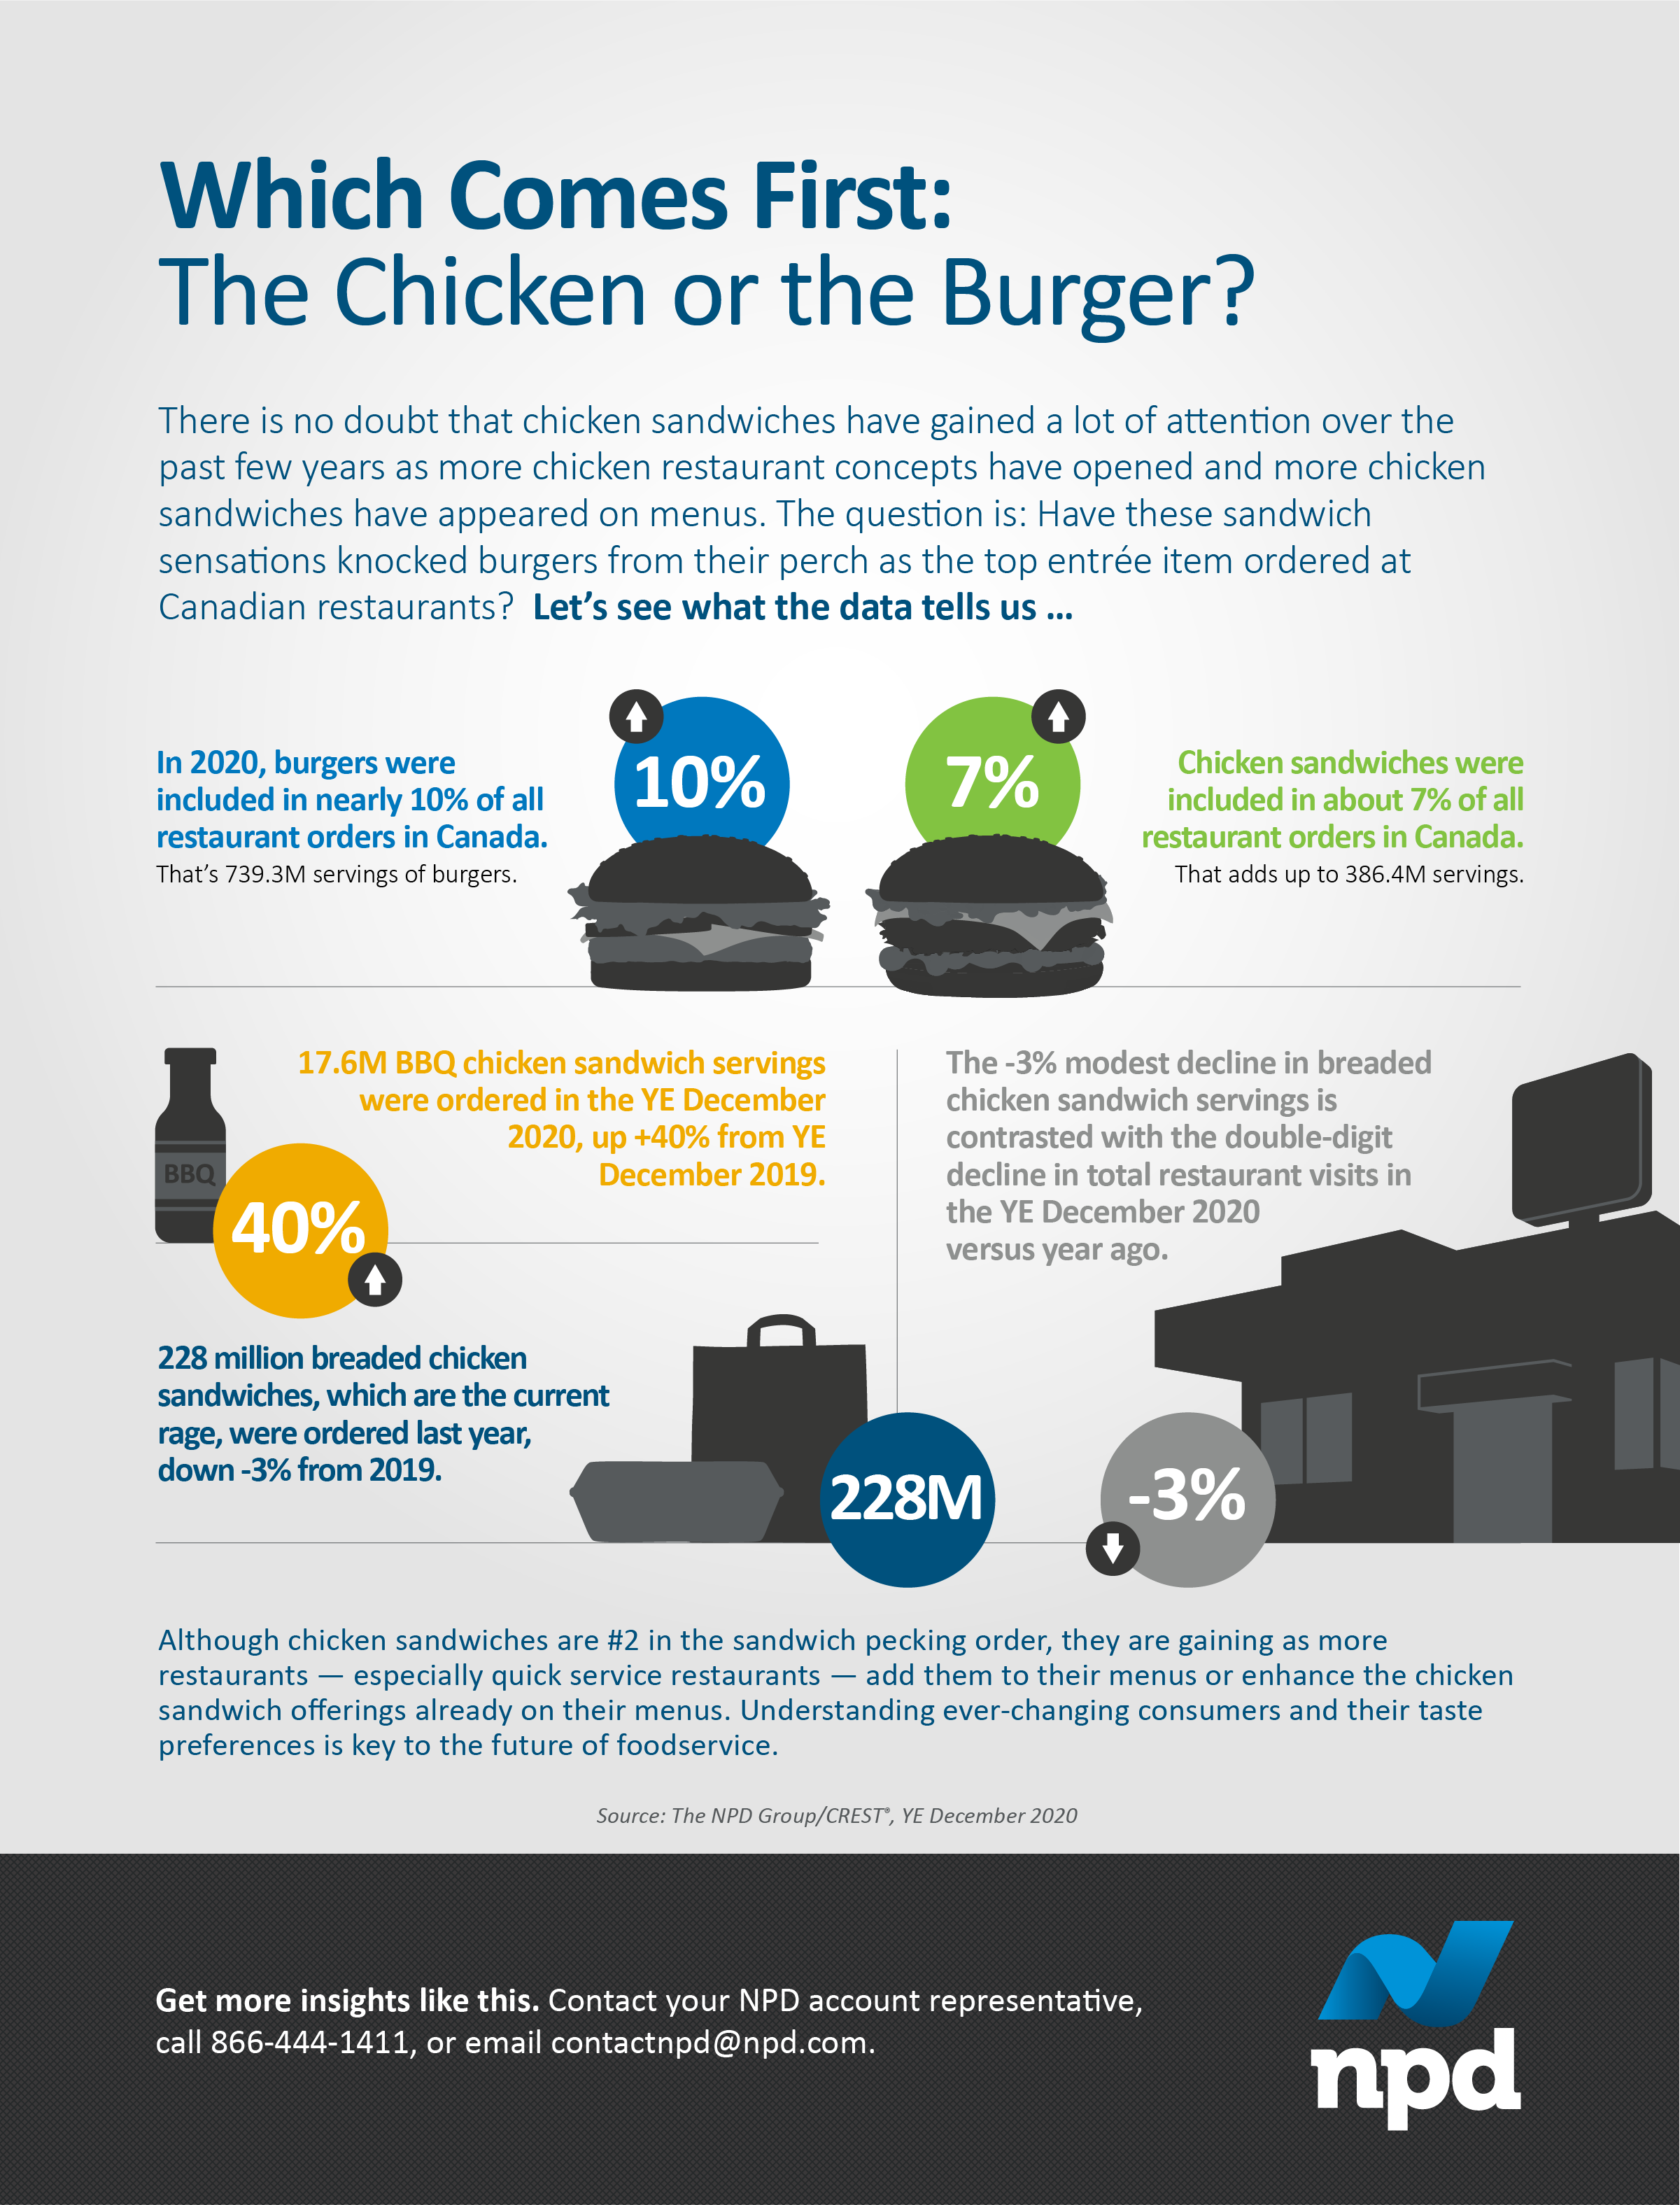 There is no doubt that chicken sandwiches have gained a lot of attention over the past few years as more chicken restaurant concepts have opened and more chicken sandwiches have appeared on menus.